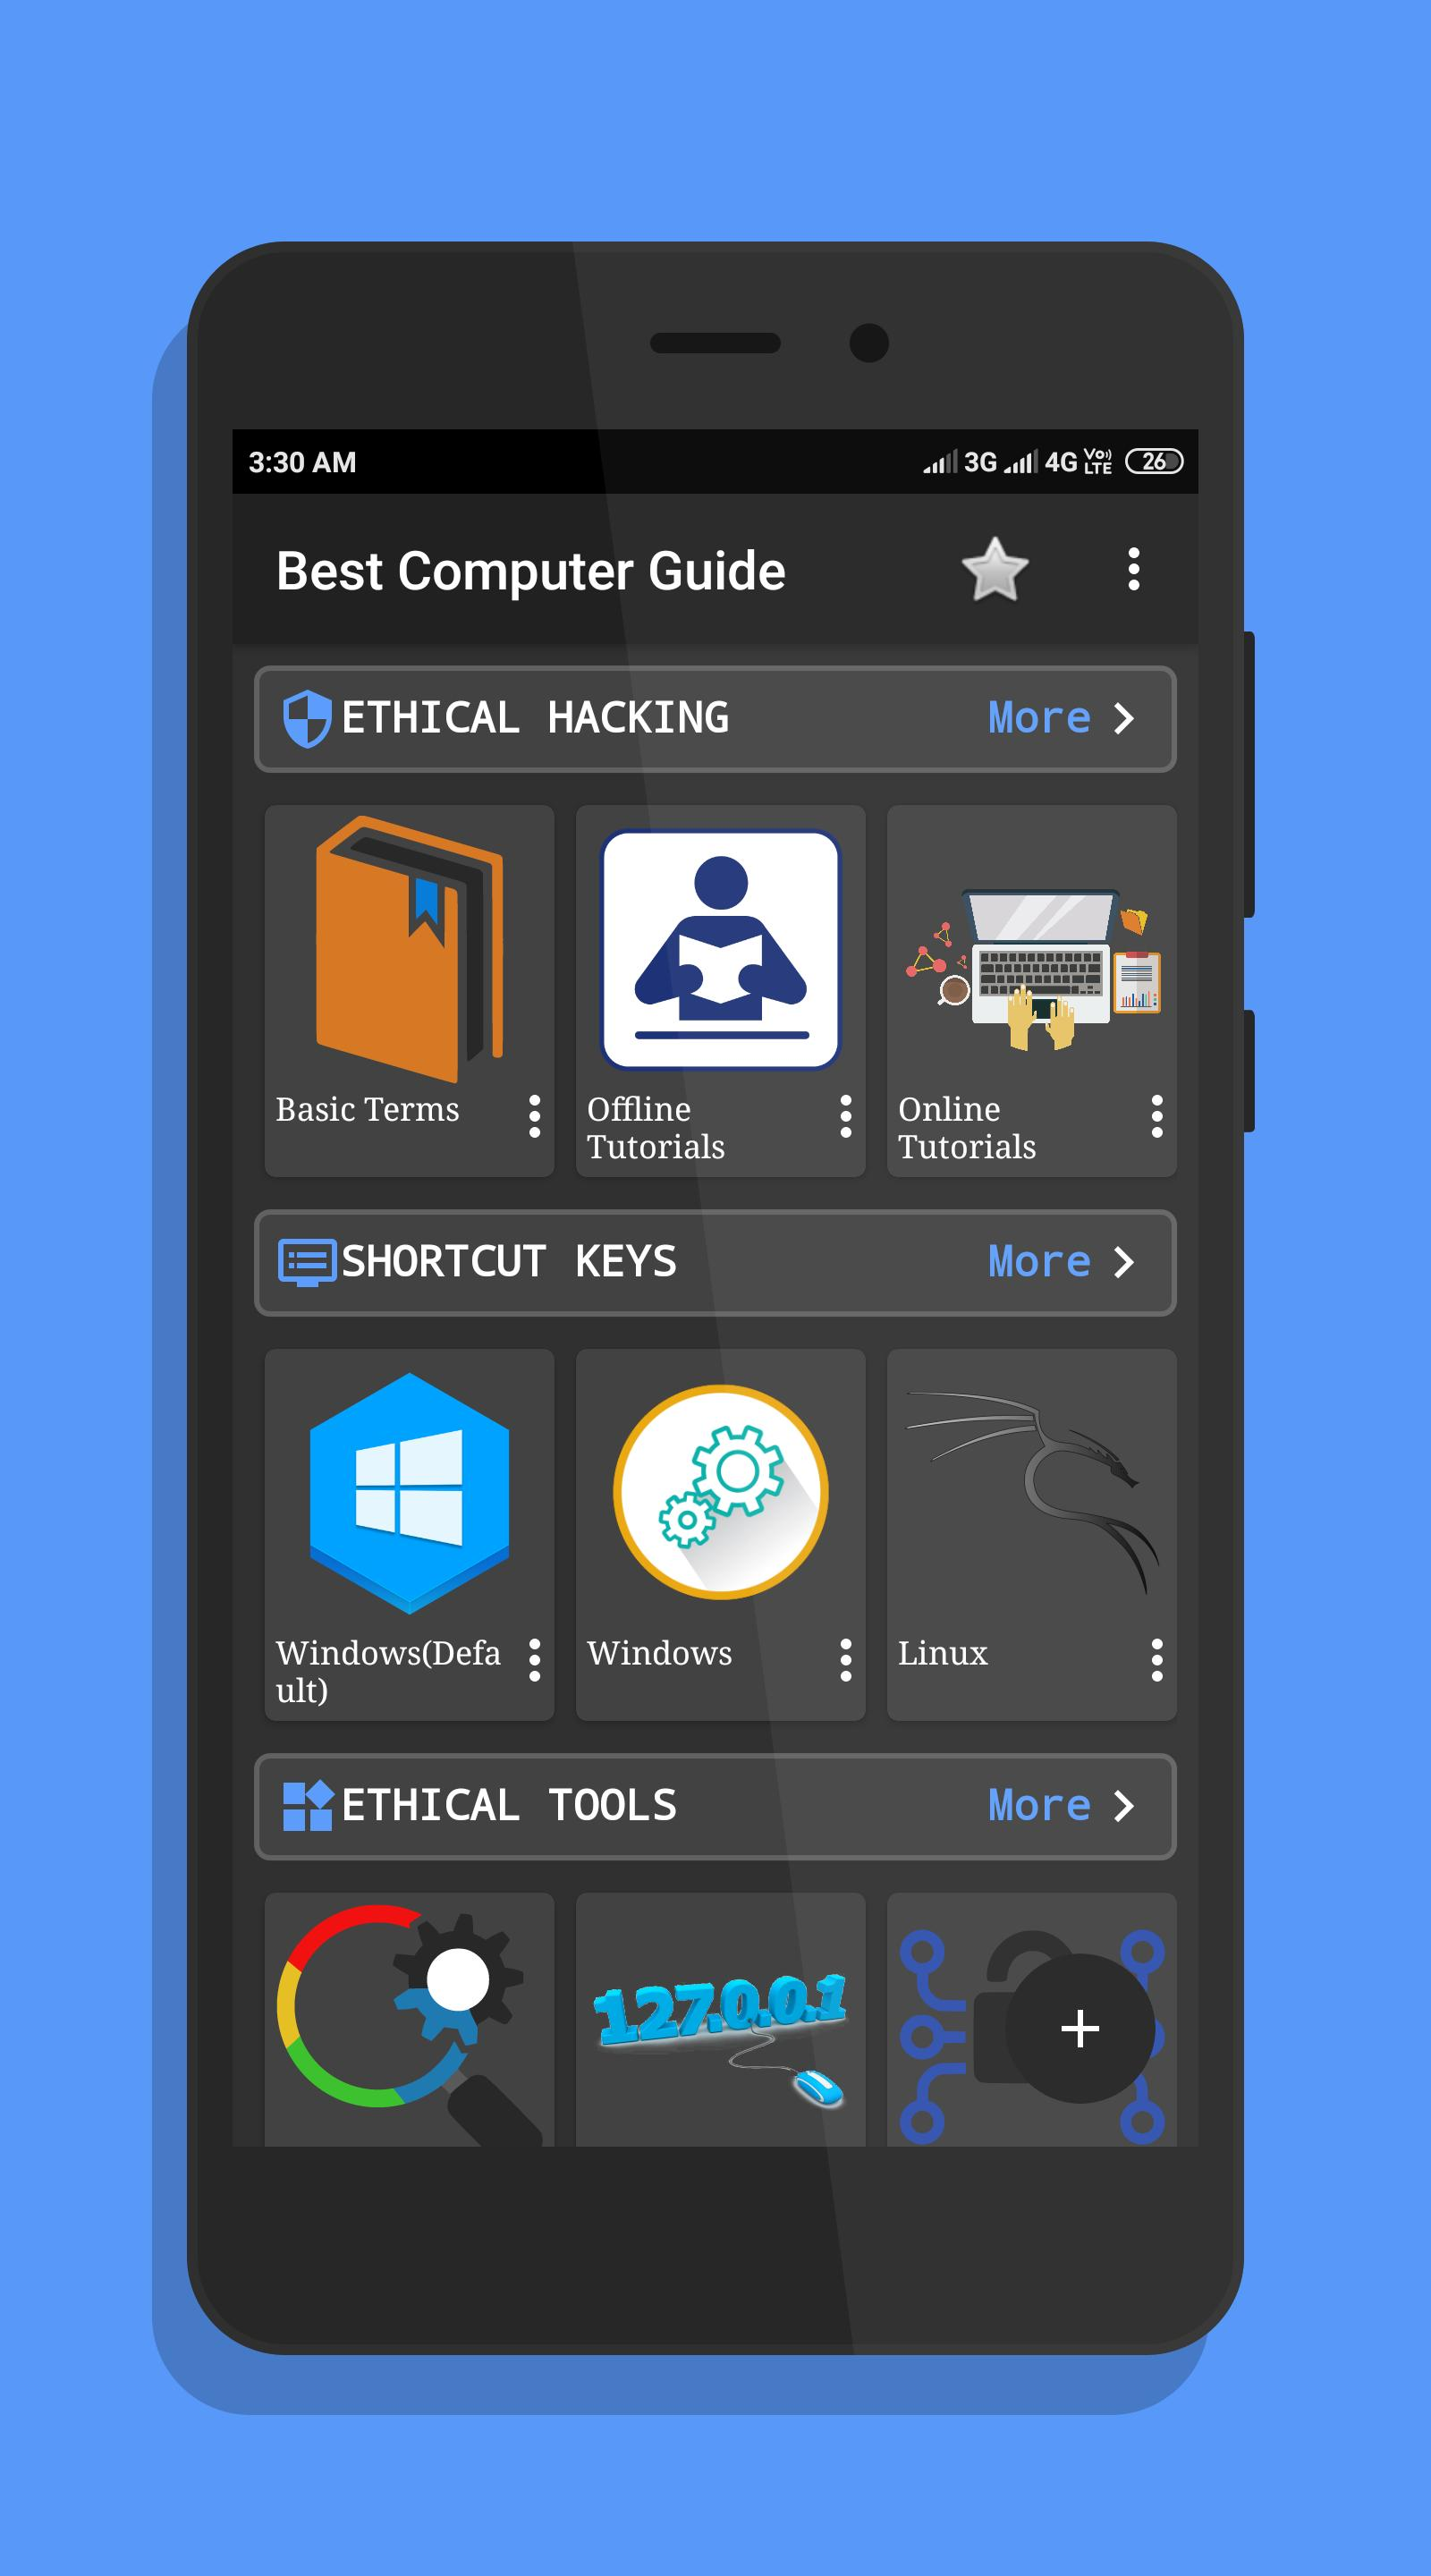 Best Computer & Ethical Hacking Guide for Android - APK Download